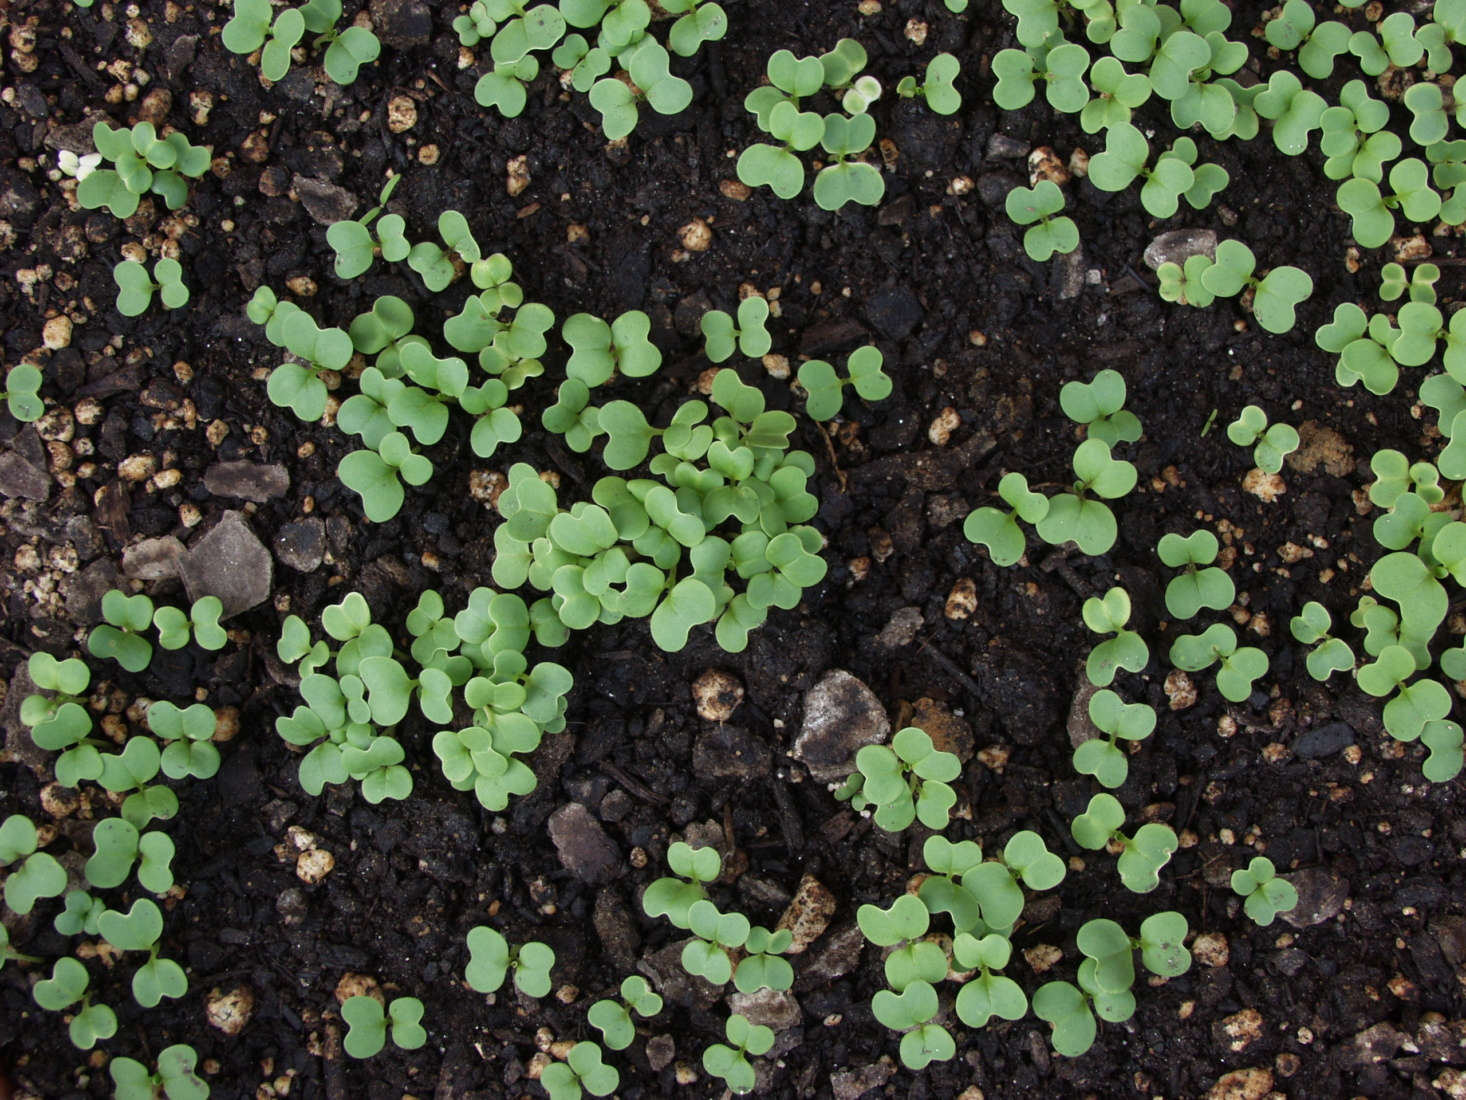 Mustard greens; seedlings in an edible garden. Photograph by Maggie McCain via Flickr.